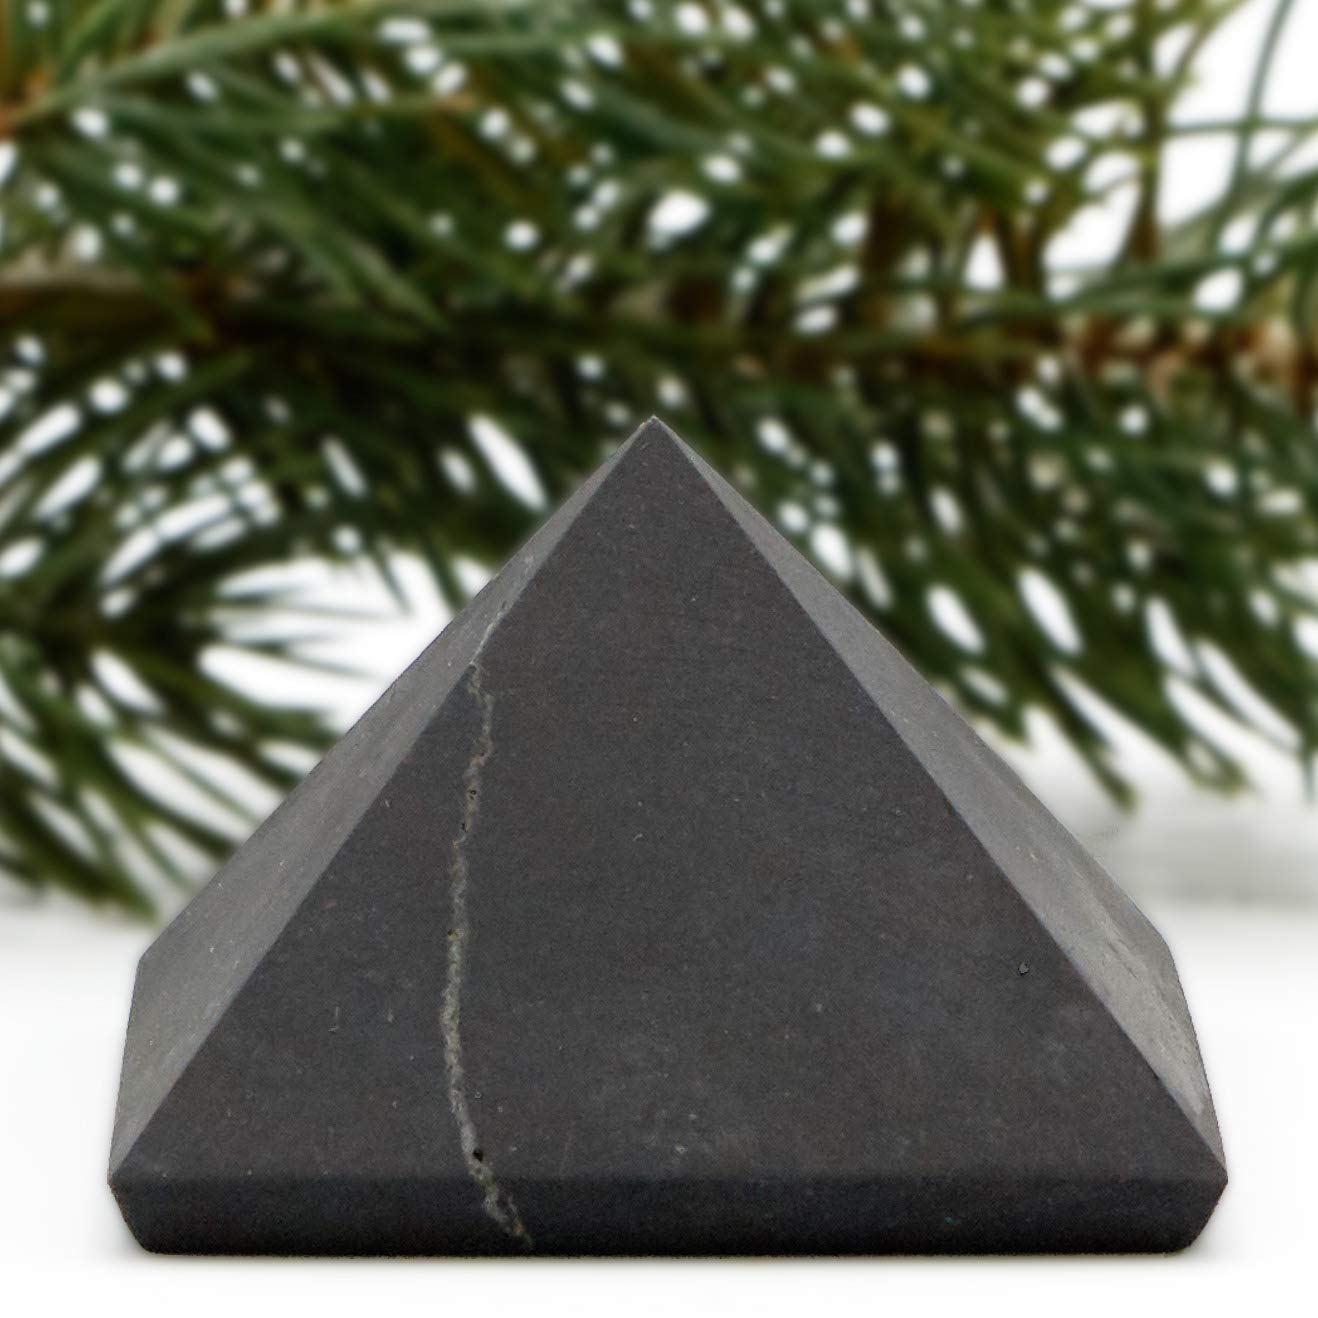 Stones Crystal Mineral Large UnPolished Shungite Power Pyramid from Russia 2 Inch